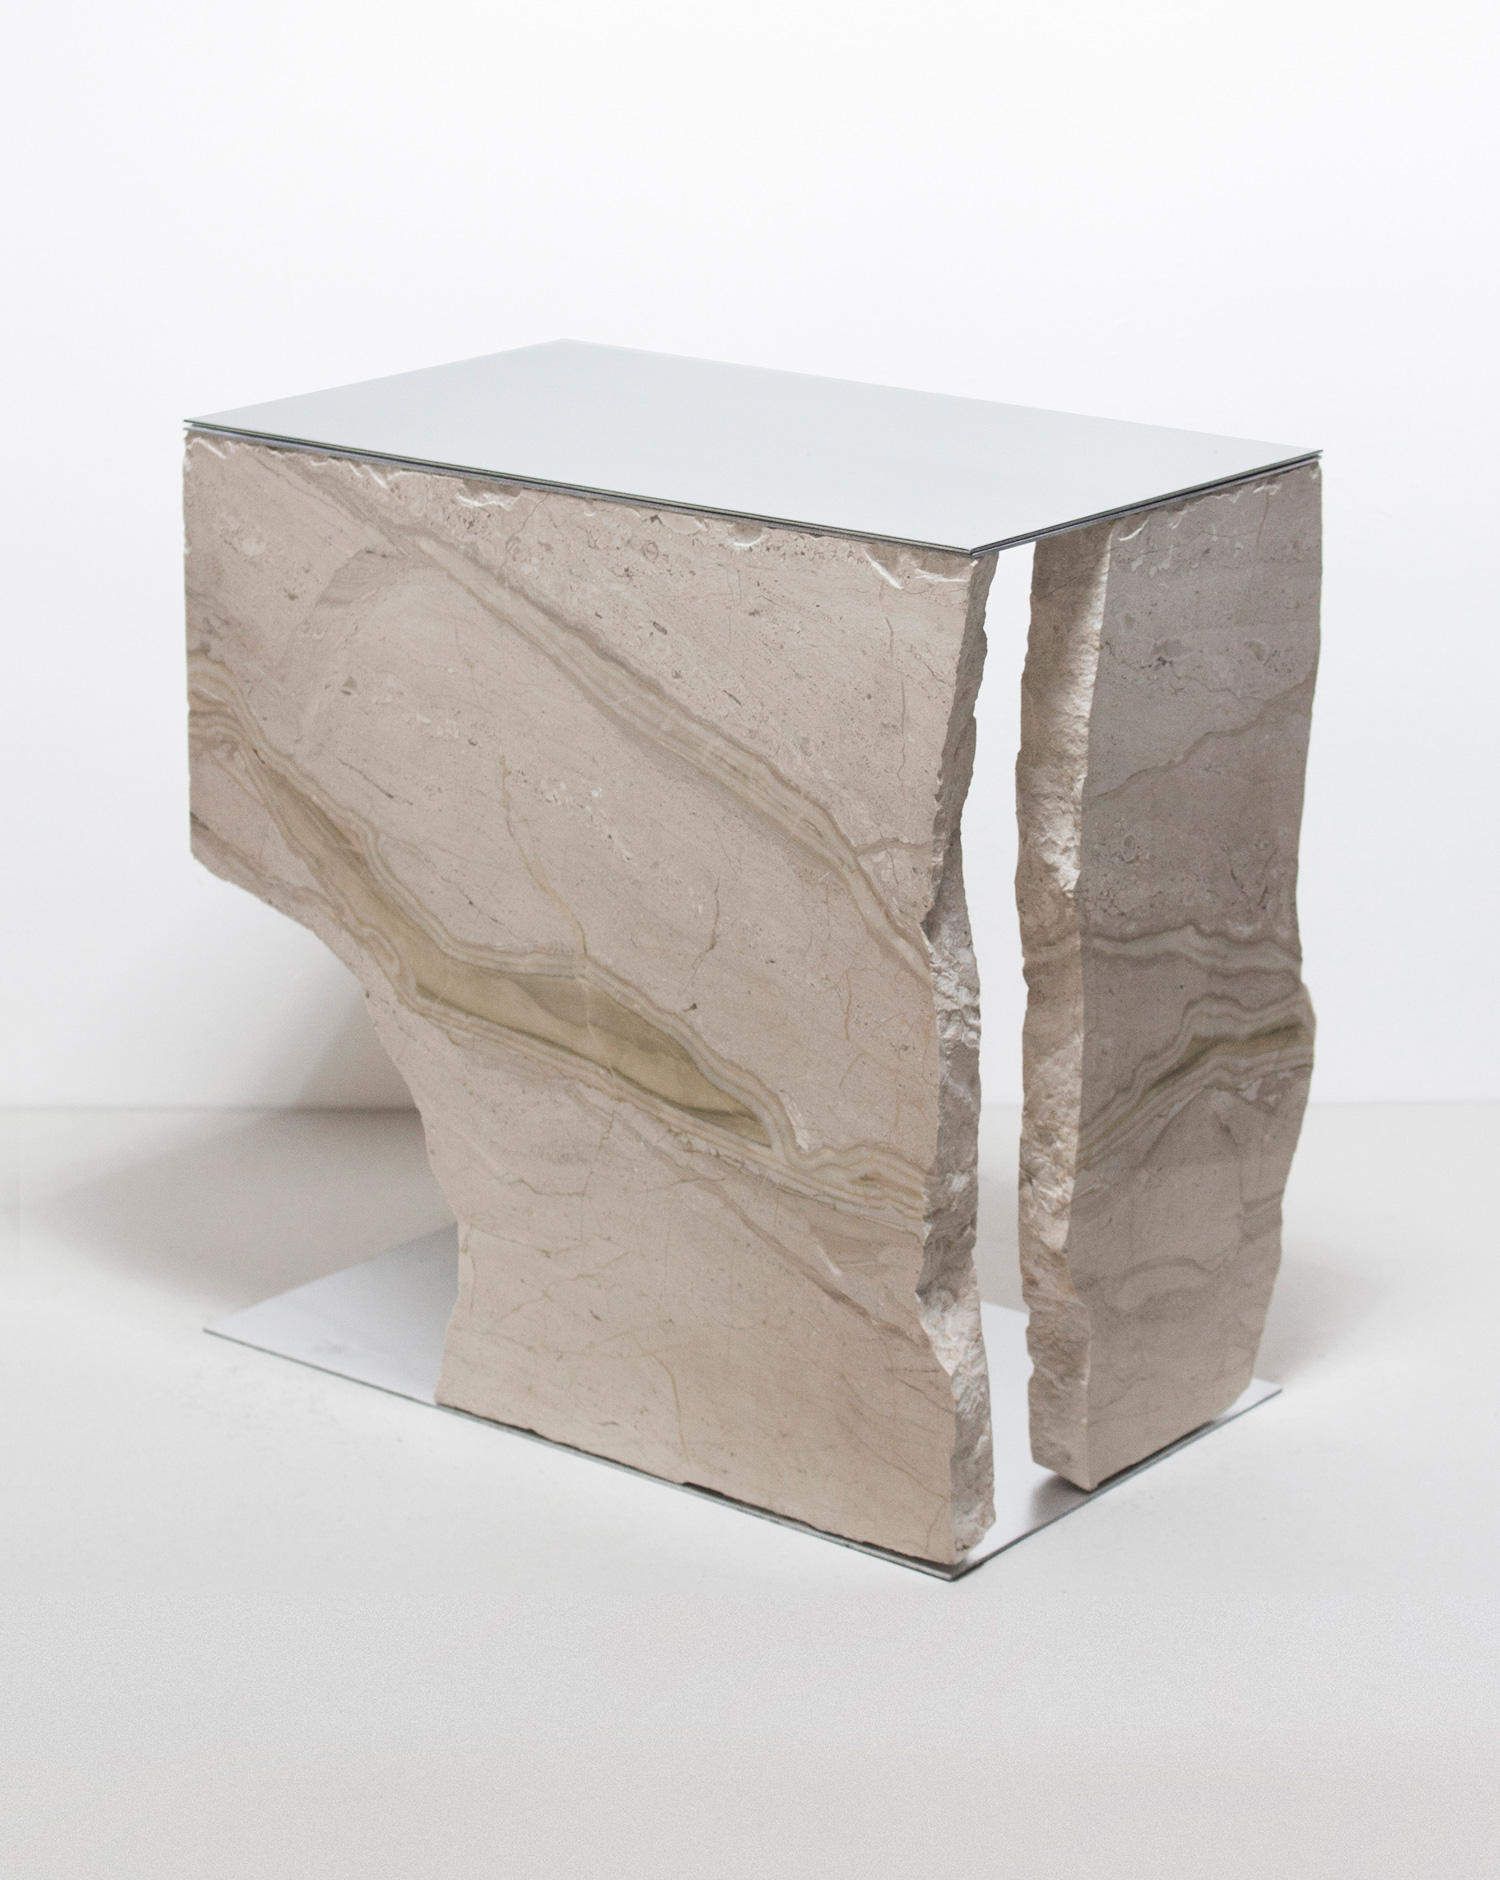 Carla Cascales' Sculpture Project, Cube   Yellowtrace